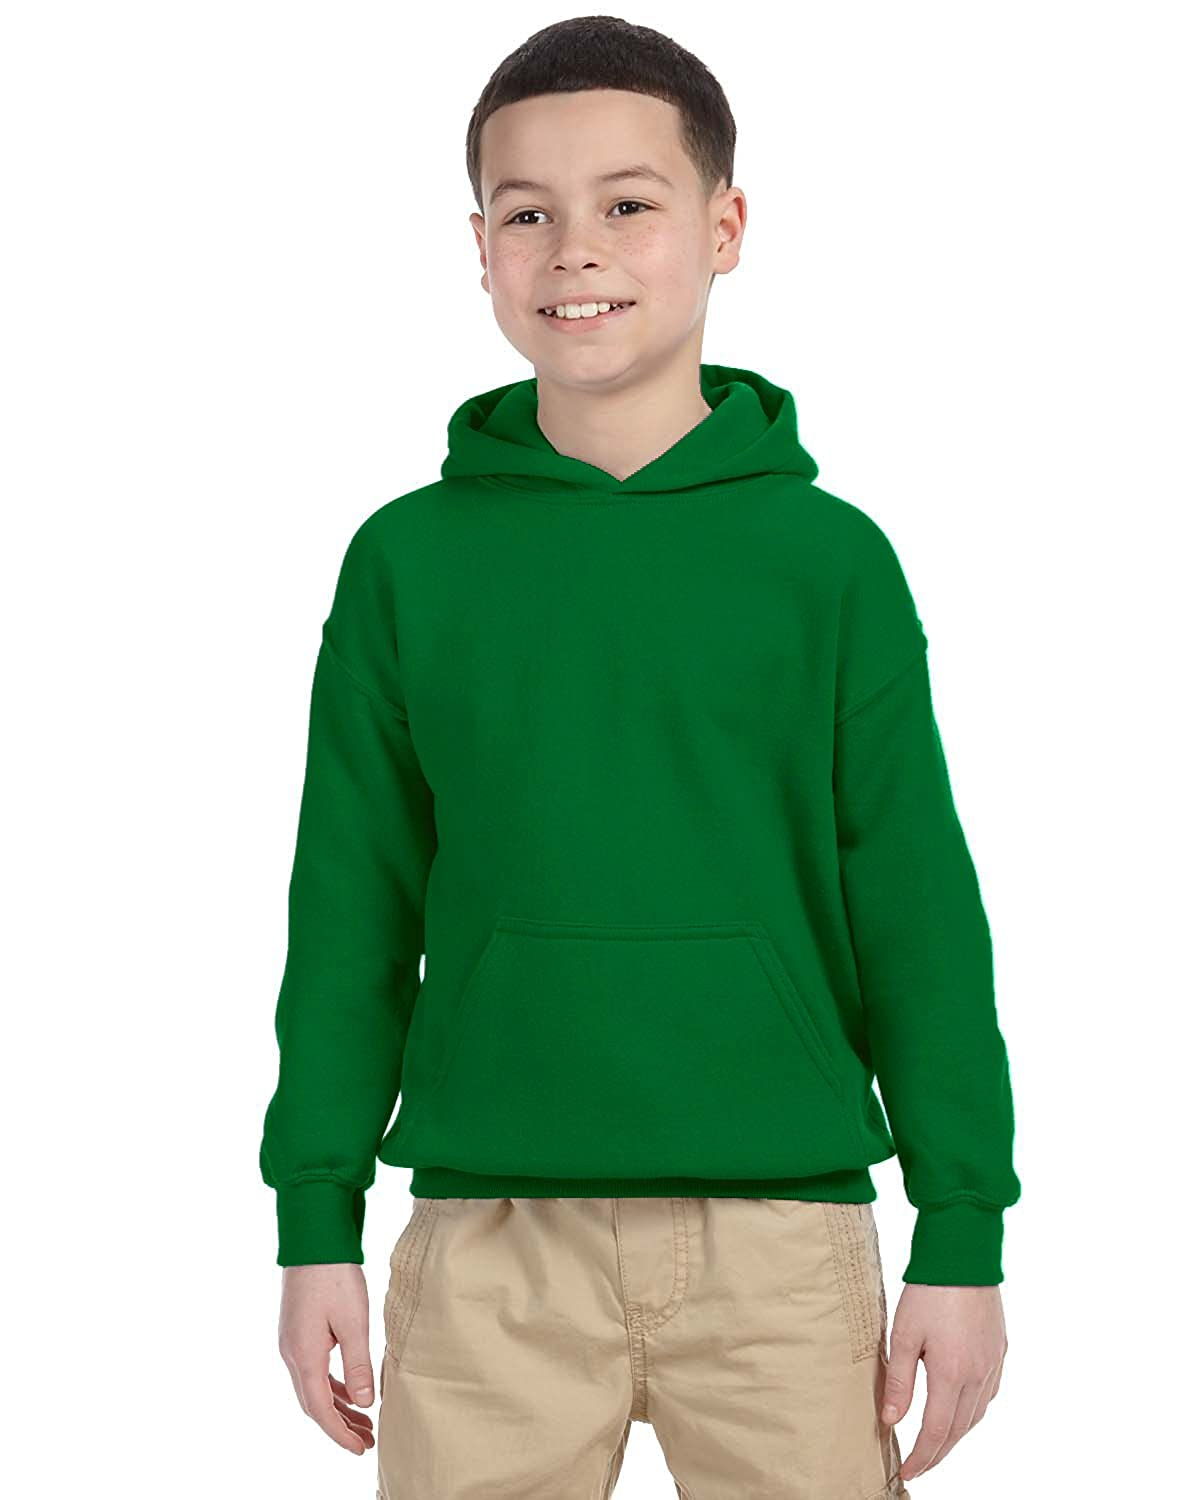 Indica Plateau Youth Too Many Tabs Open Kids Hoodie